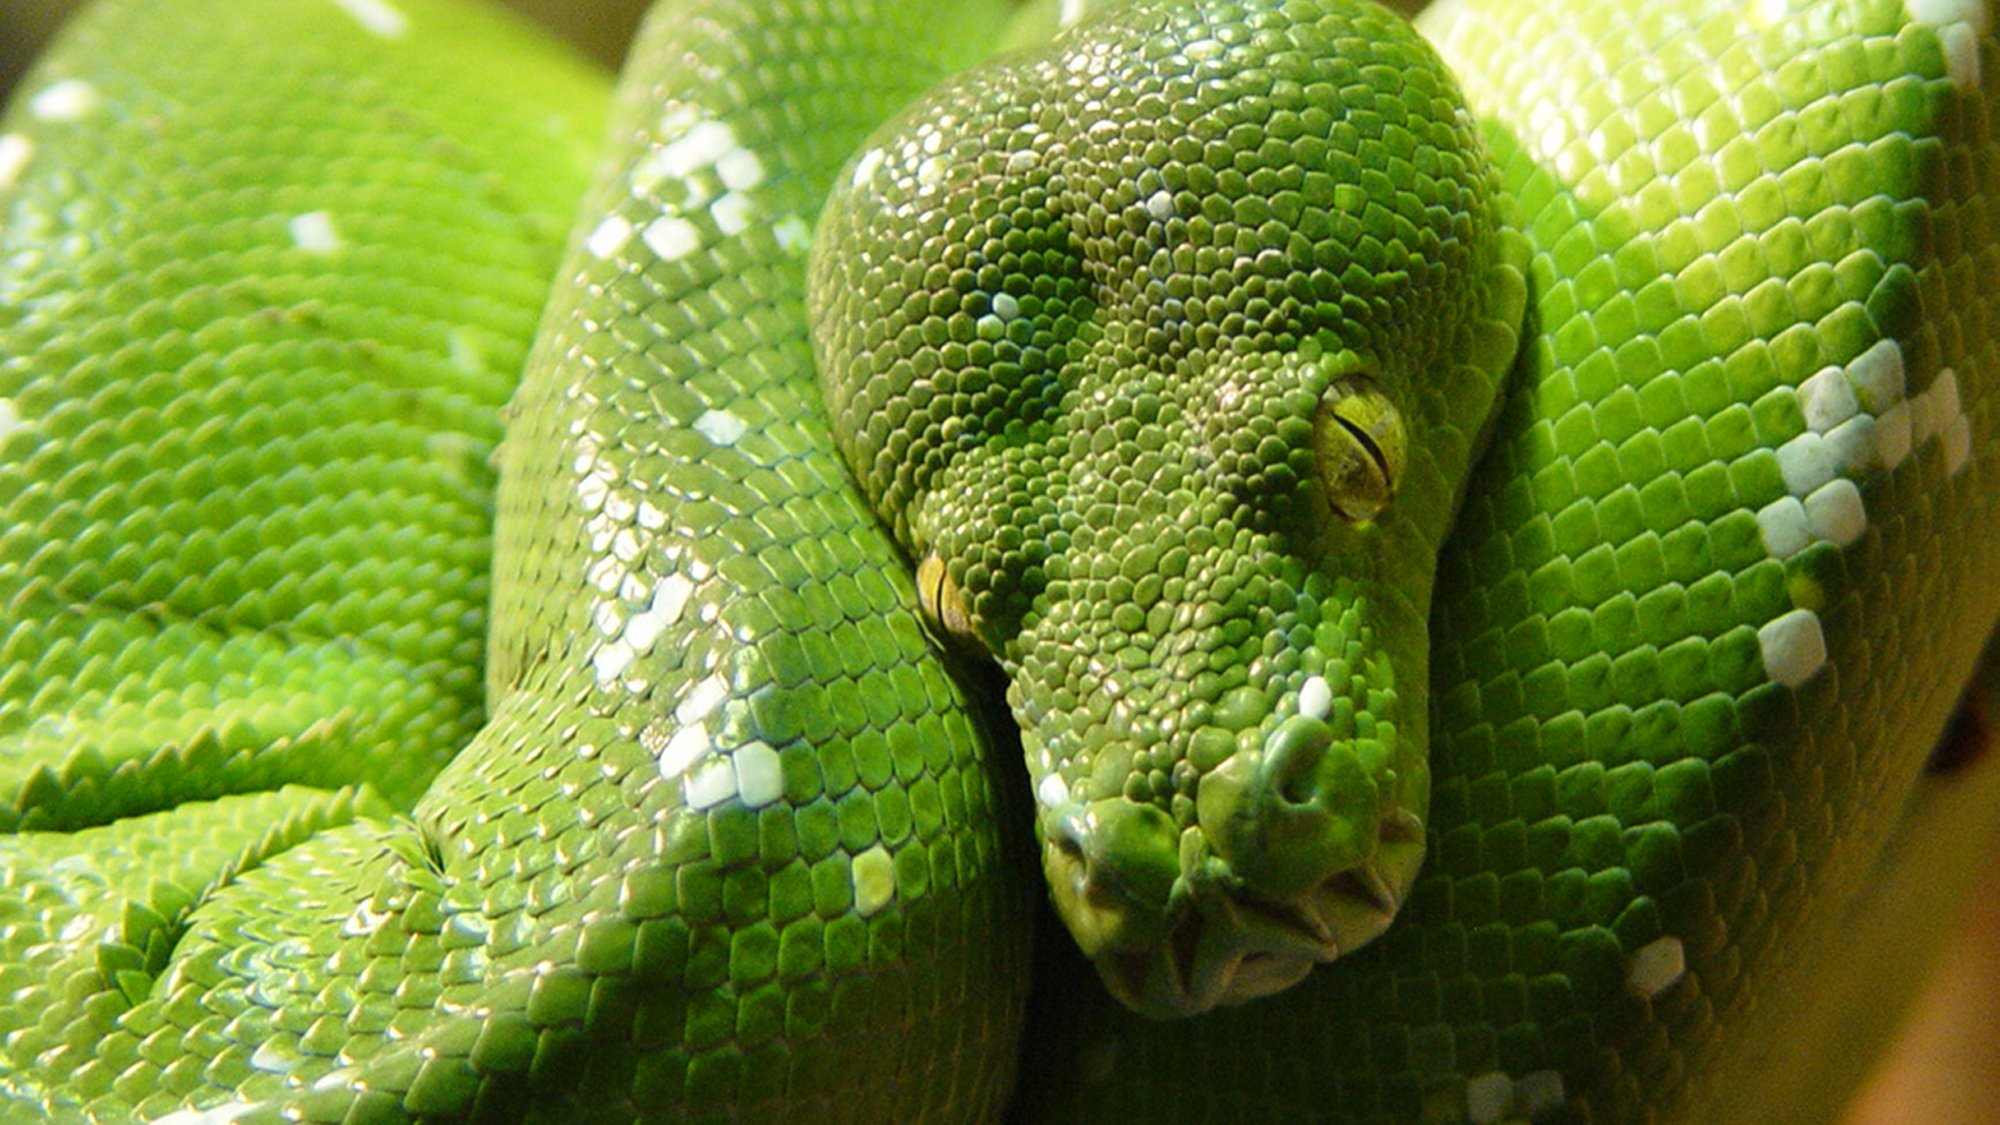 Green Tree Python at ZSL London Zoo